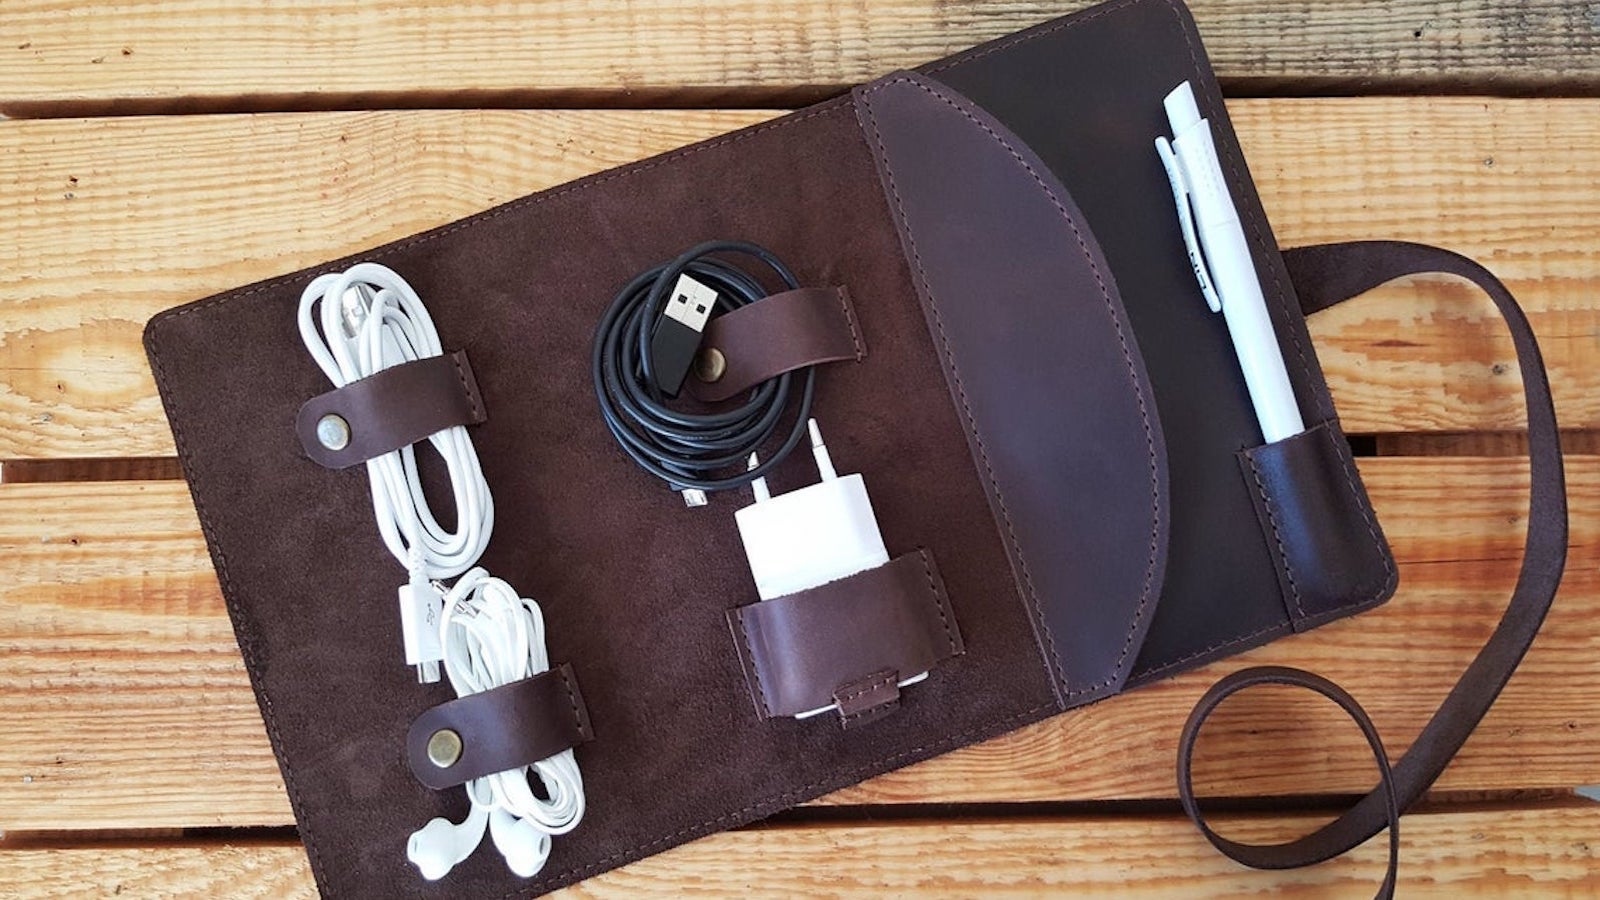 Sinevir Personalized Cord Organizer Leather Cable Holder